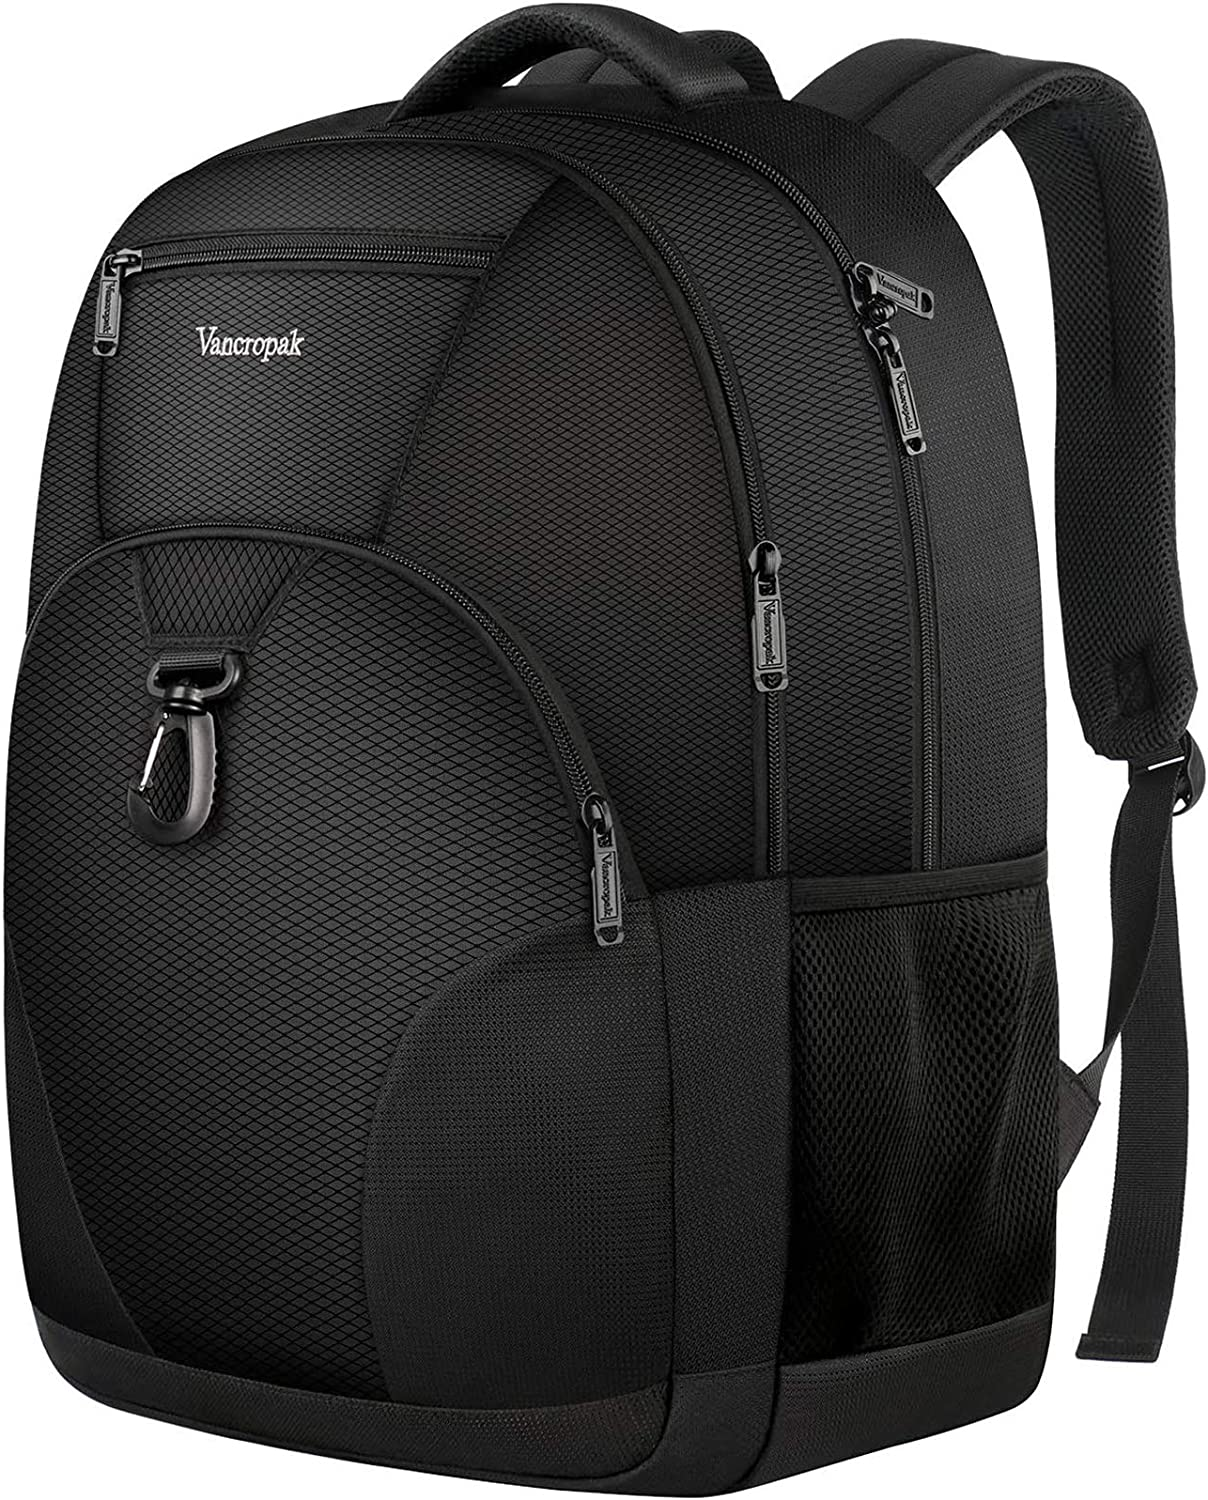 Vancropak Sport Laptop Backpack For Men Women, Large School Backpacks For Teenagers College Students,Back To School Backpacks Casual Daypack Bookbag Lightweight Bag For 17 Inch Notebook